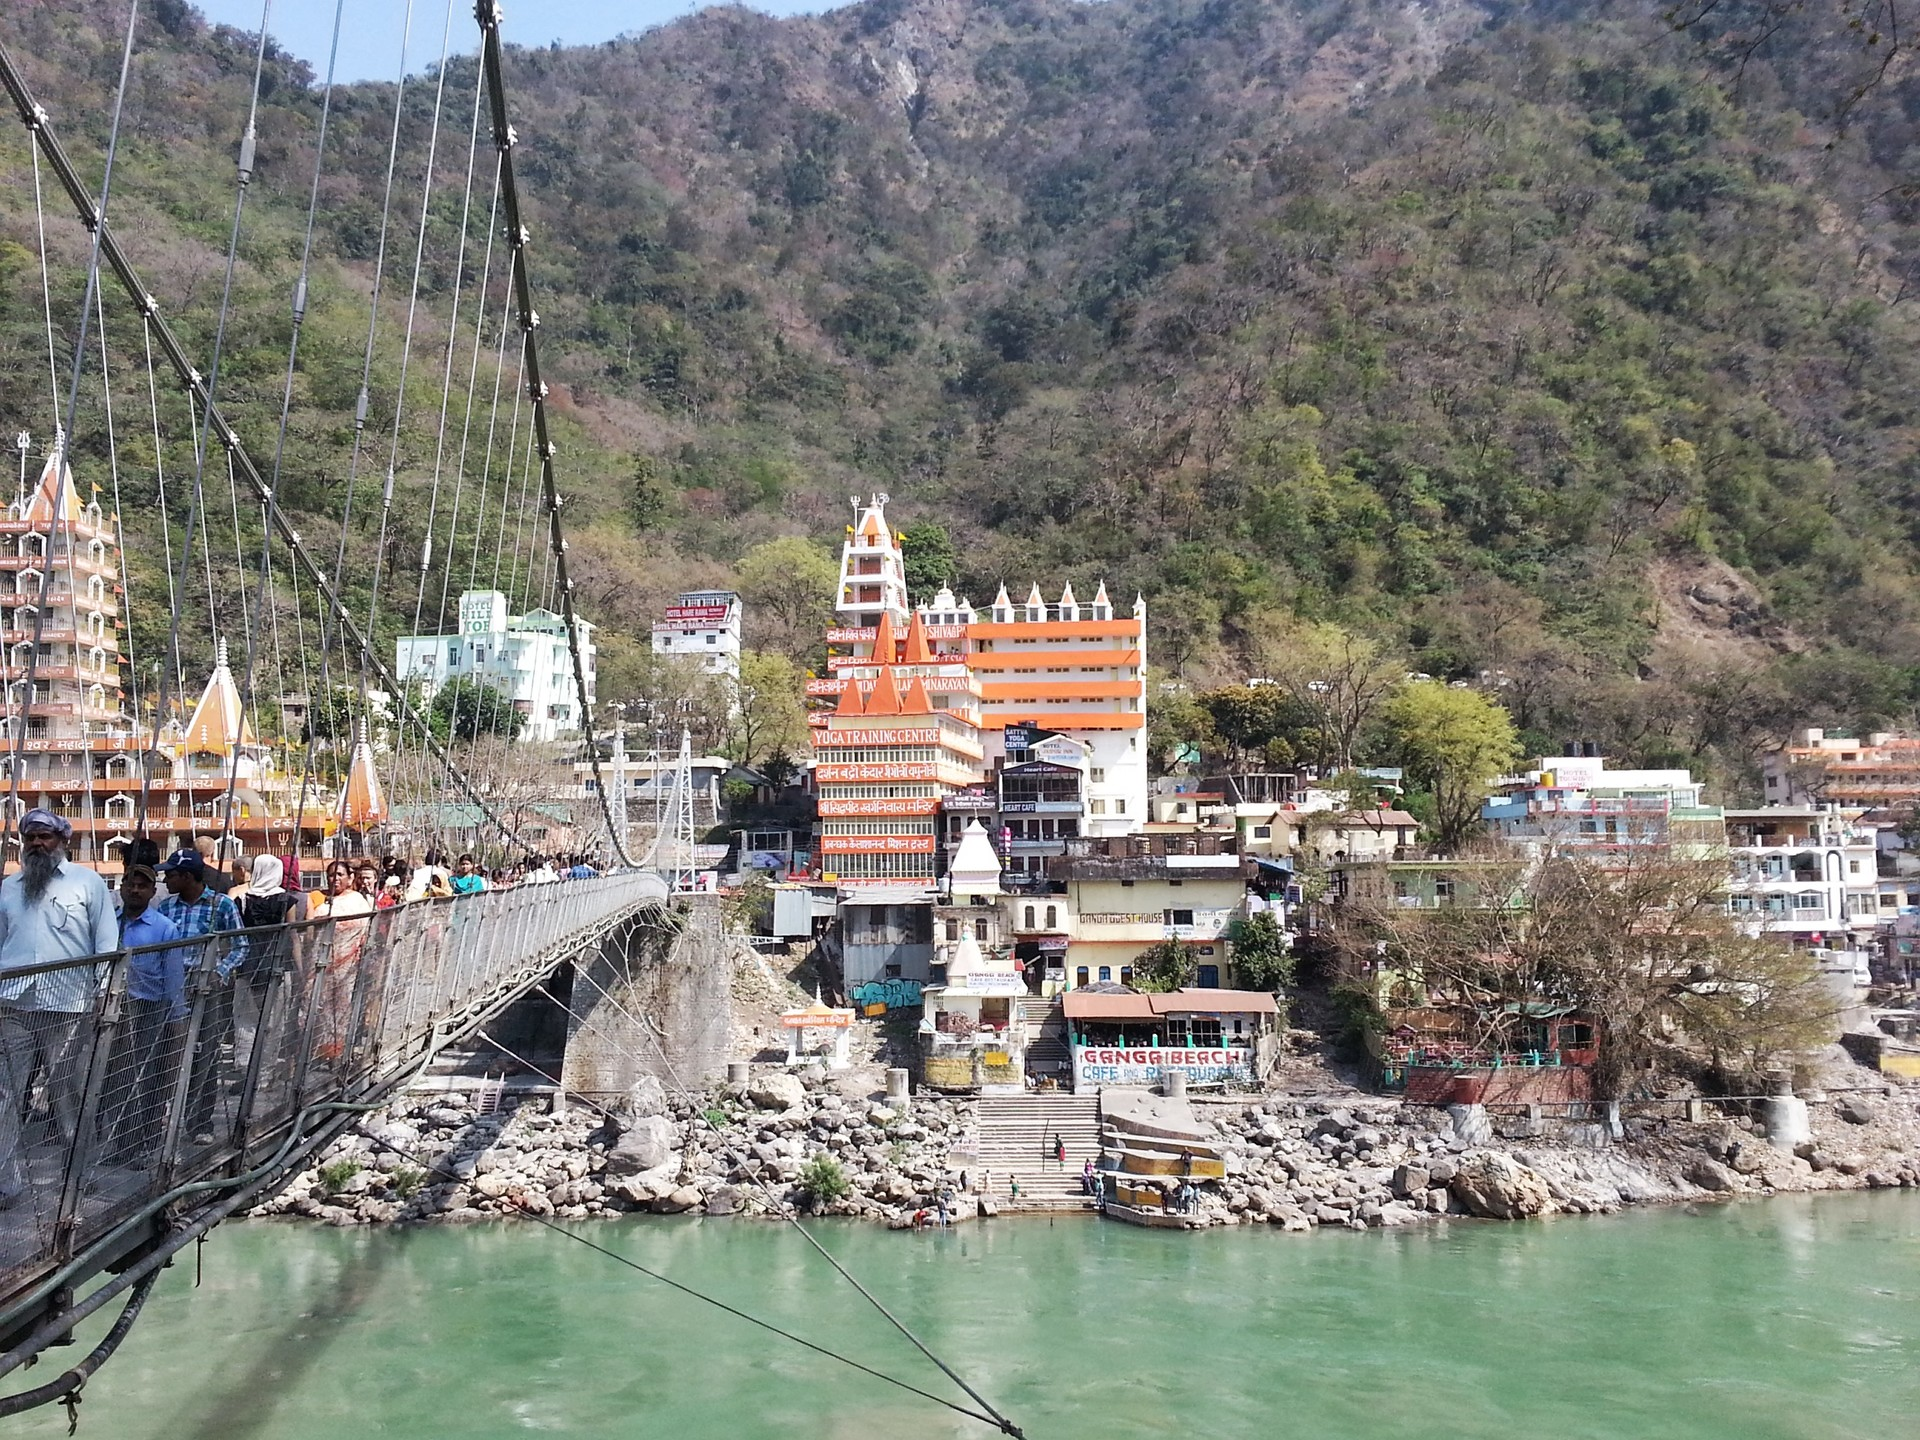 Laxman Jhula, Inidan Spa and The Beatles ashram